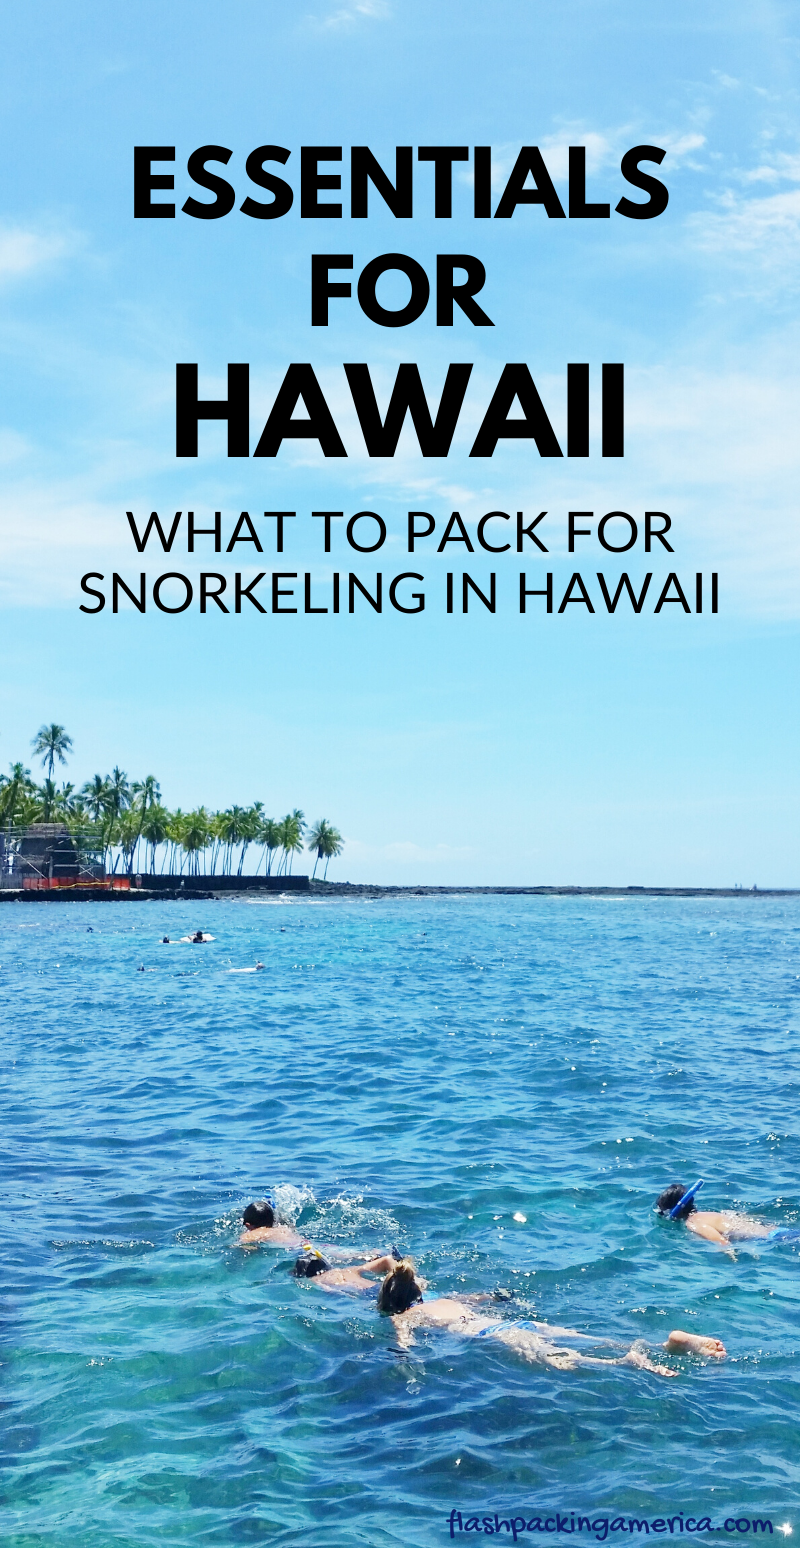 What to pack for Hawaii: snorkeling essentials - Oahu, Maui, Big Island, Kauai